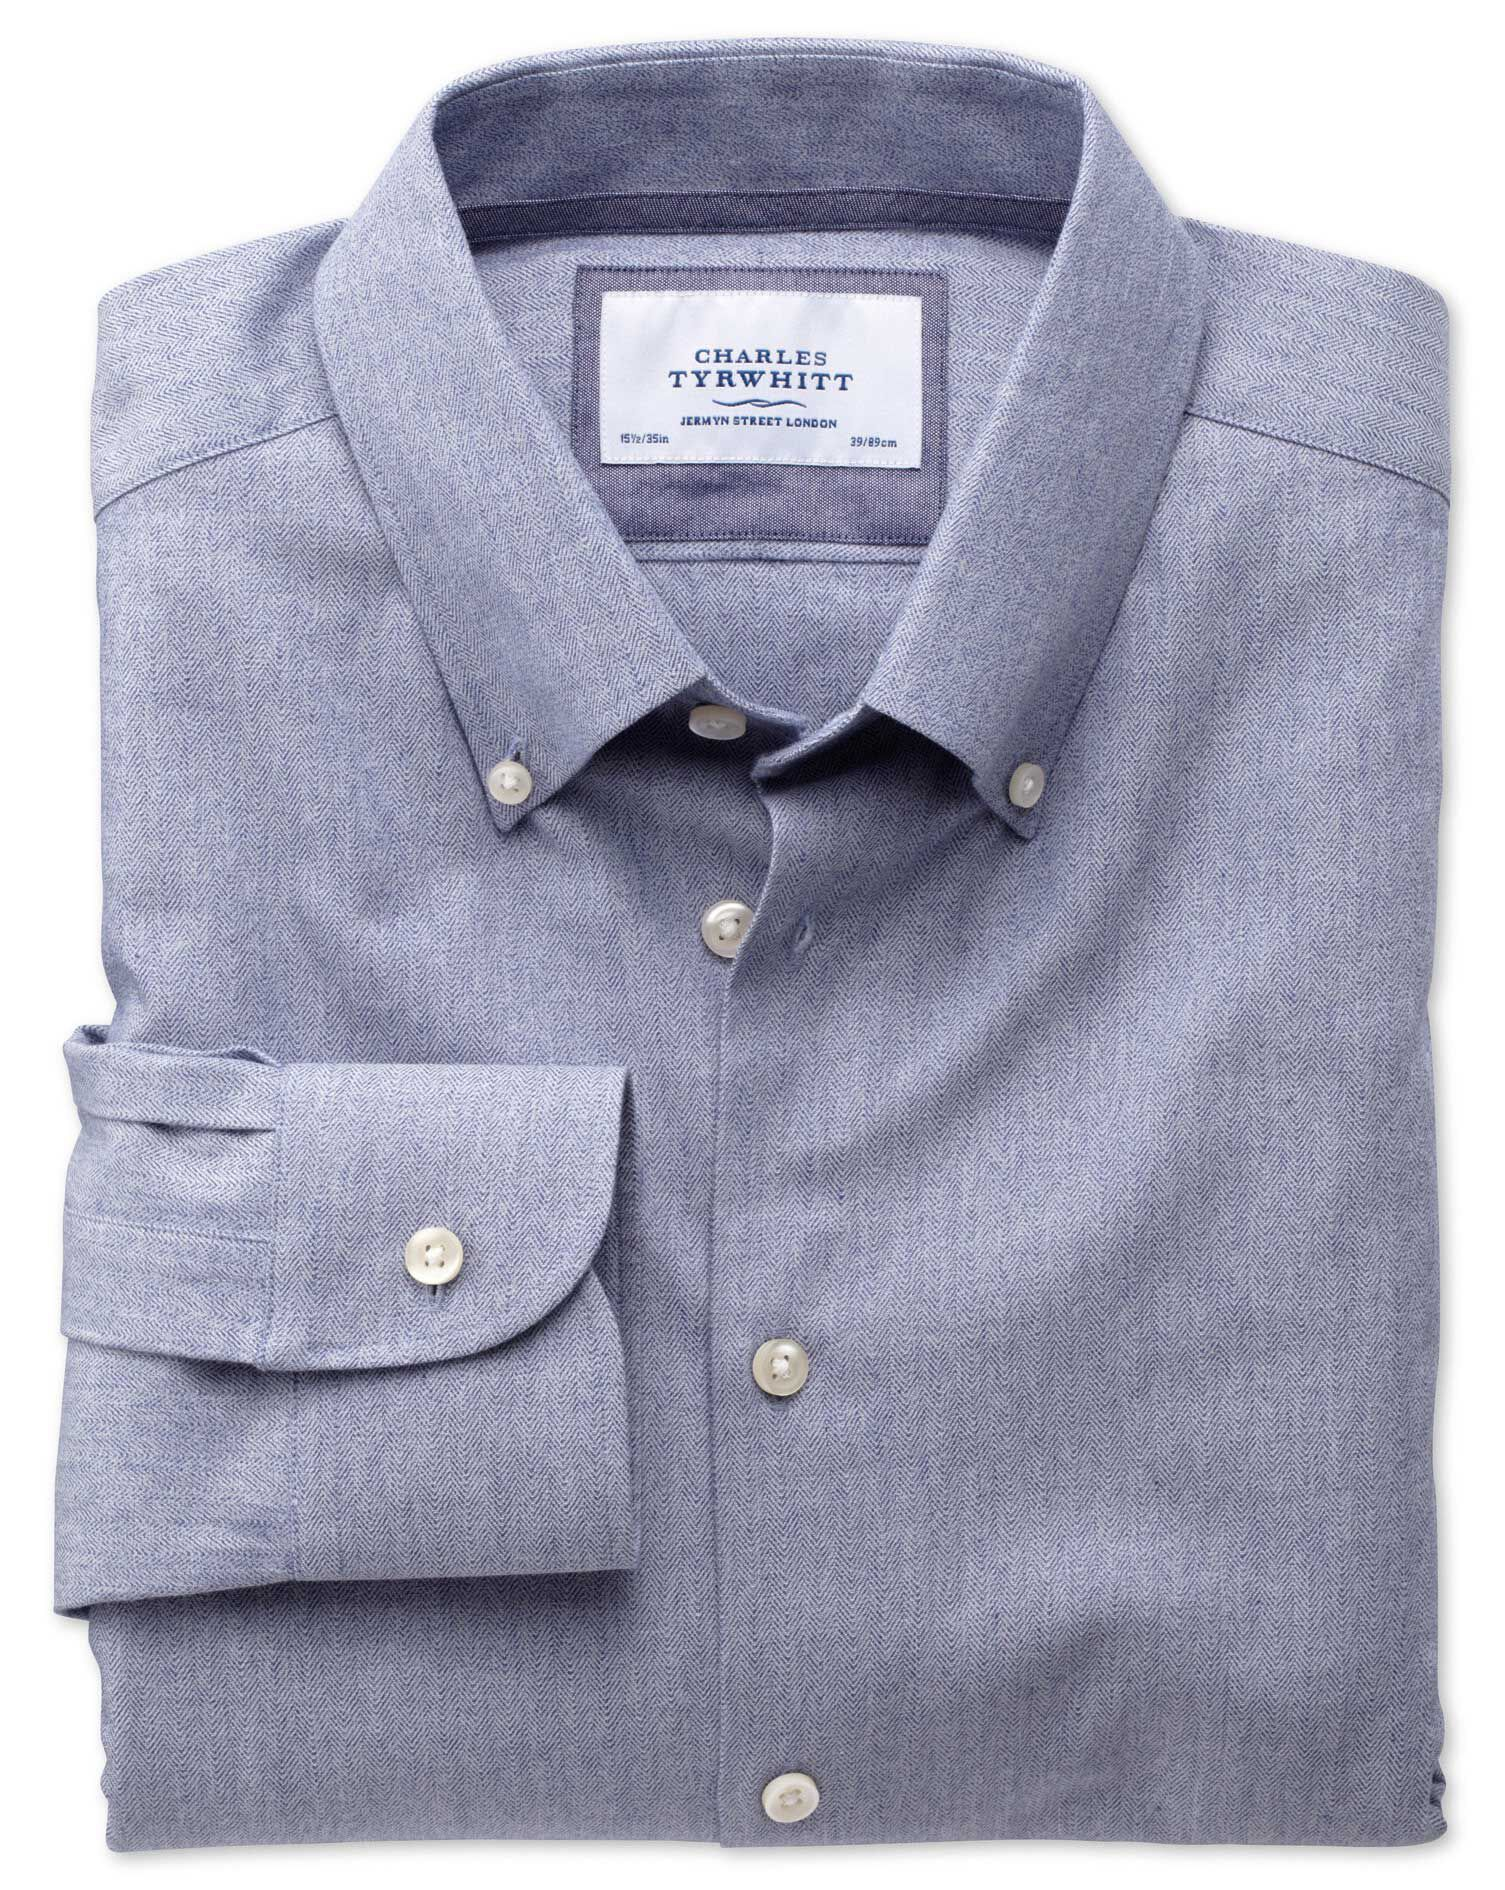 Extra Slim Fit Button-Down Collar Business Casual Blue Formal Shirt Single Cuff Size 17.5/36 by Char